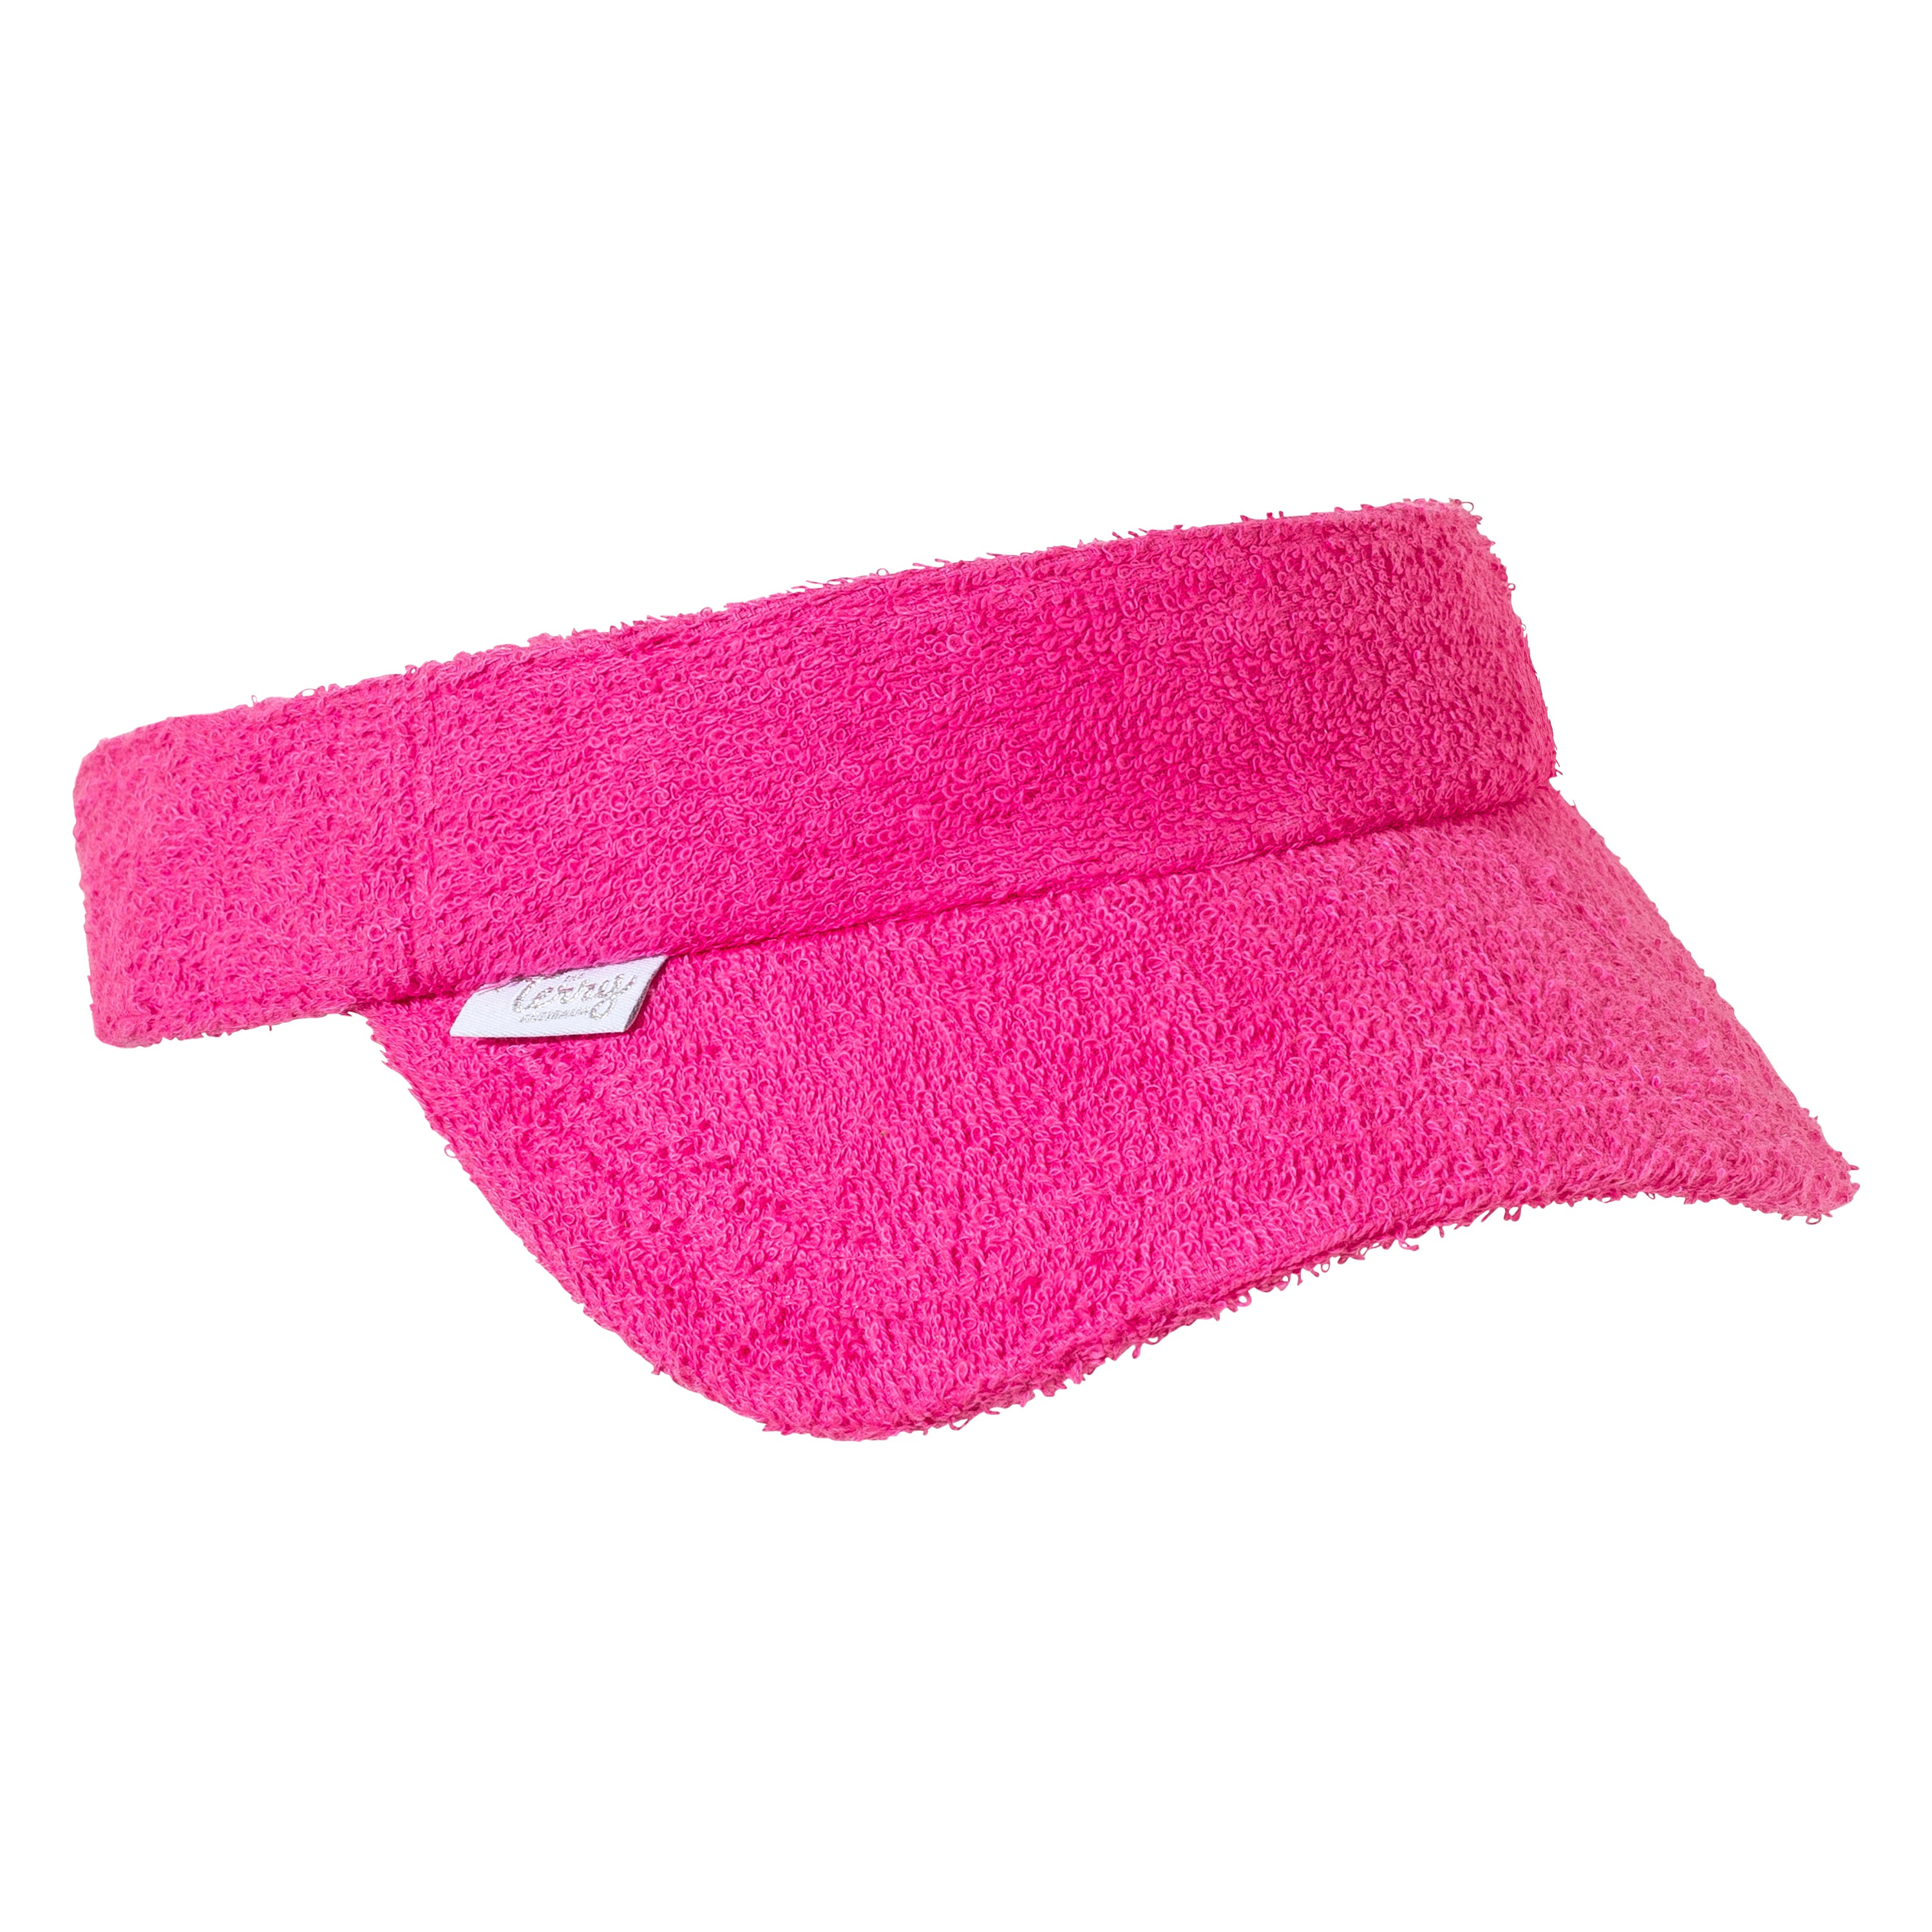 Hot Pink Terry Towelling Visor - The Terry Australia